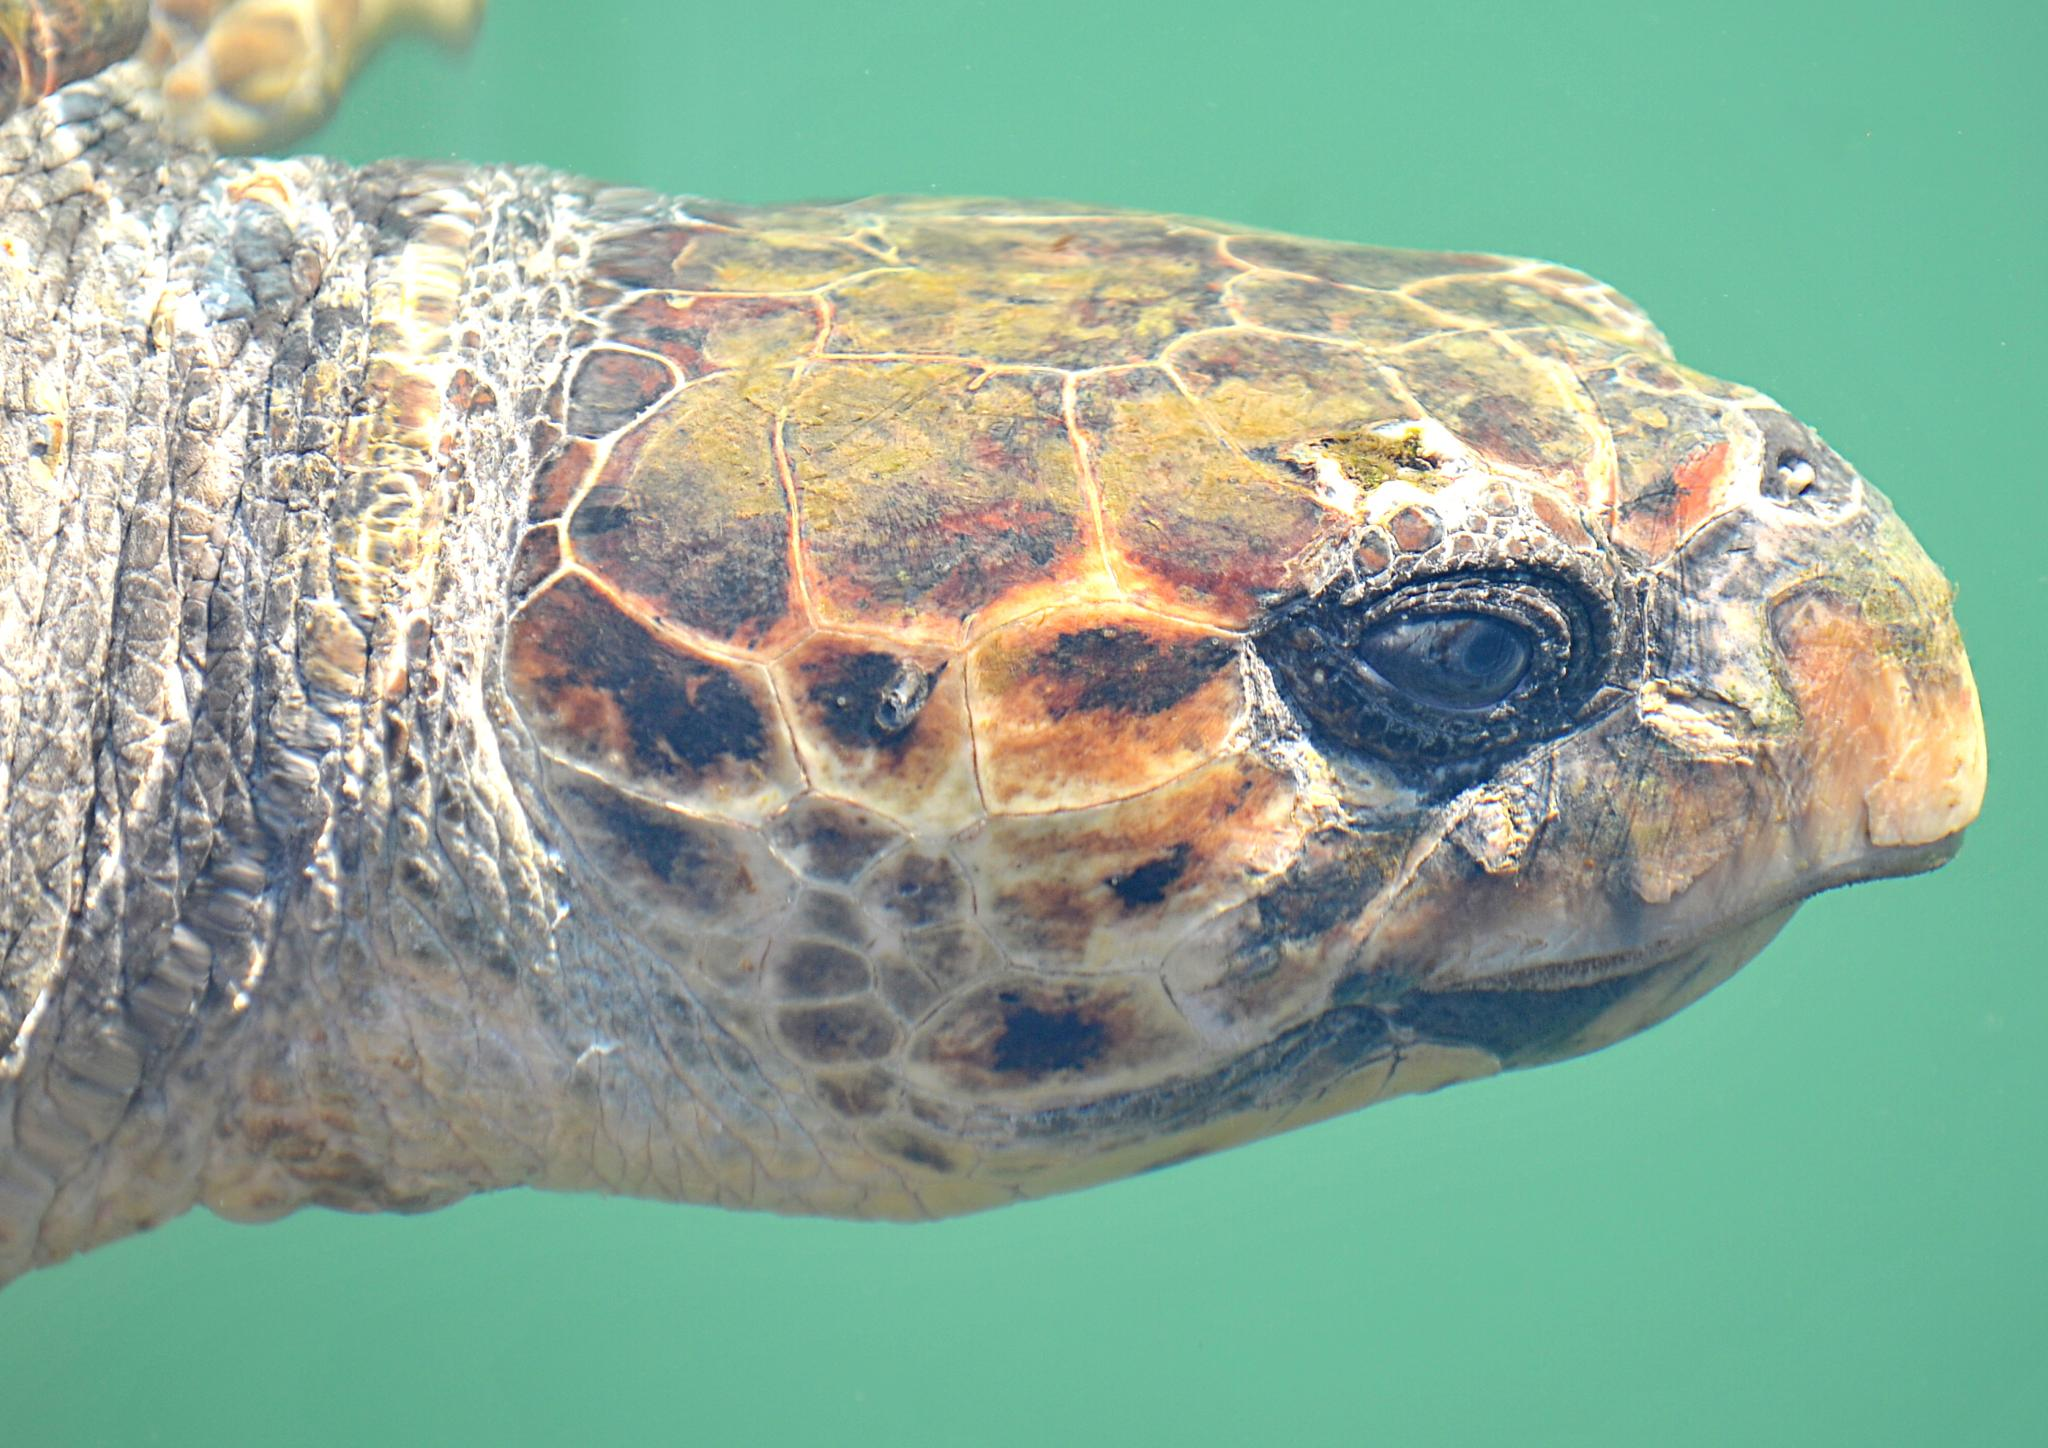 Eye of the sea turtle by twopointeightphotography